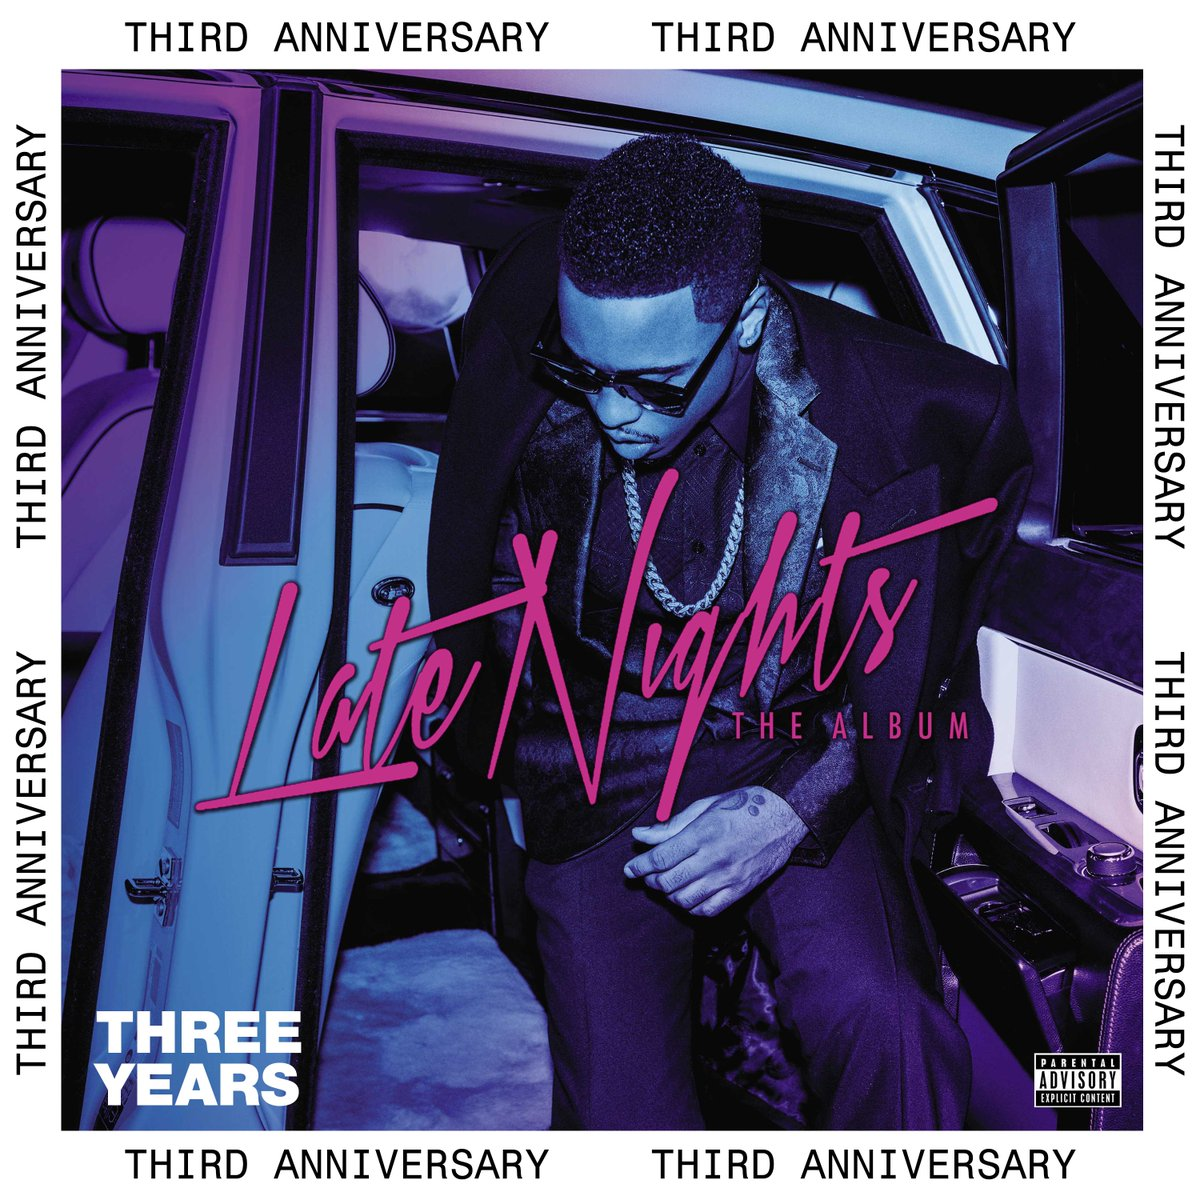 Three years ago today, @Jeremih dropped his third studio album, 'Late Nights.'  What's your favorite track? https://t.co/zm1UrANzYL